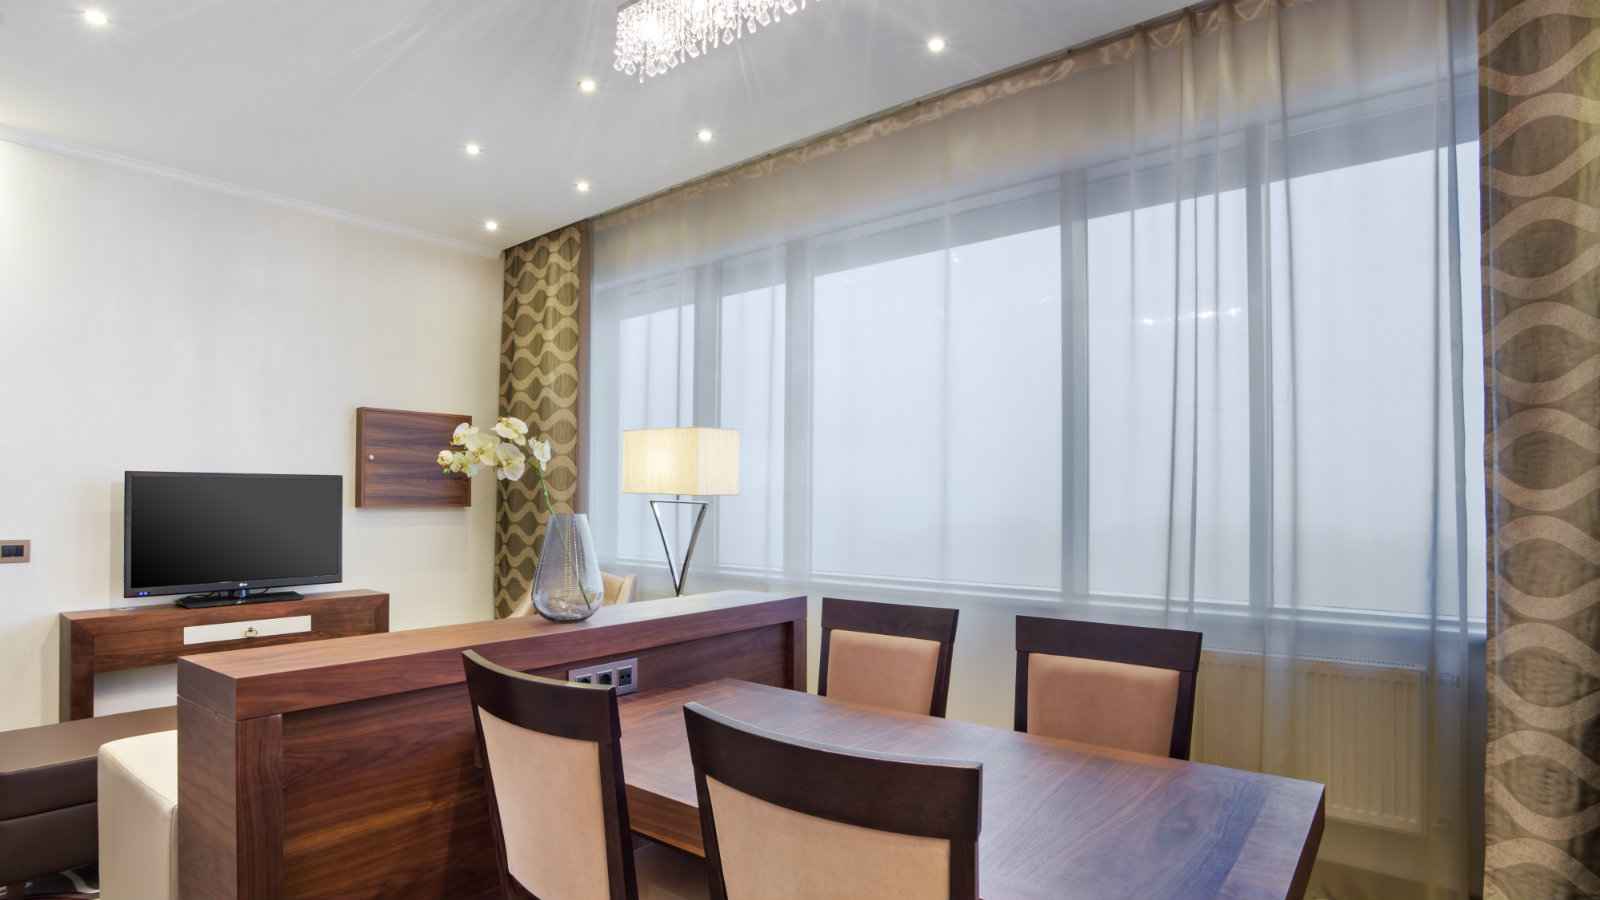 Family dining or meeting table for 4 persons in Studio Suite at Sheraton Moscow Sheremetyevo